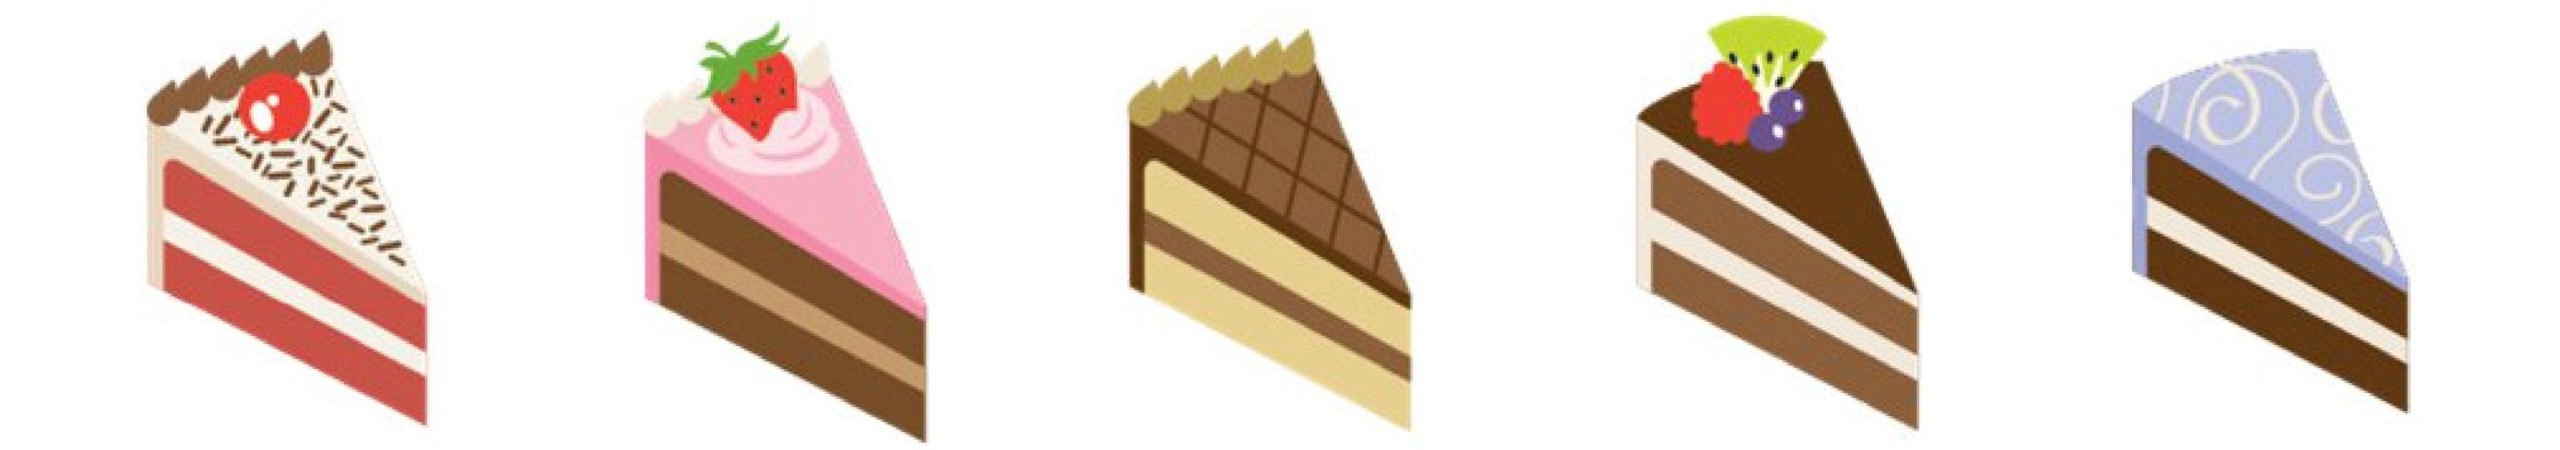 illustrations of slices of various flavored cakes